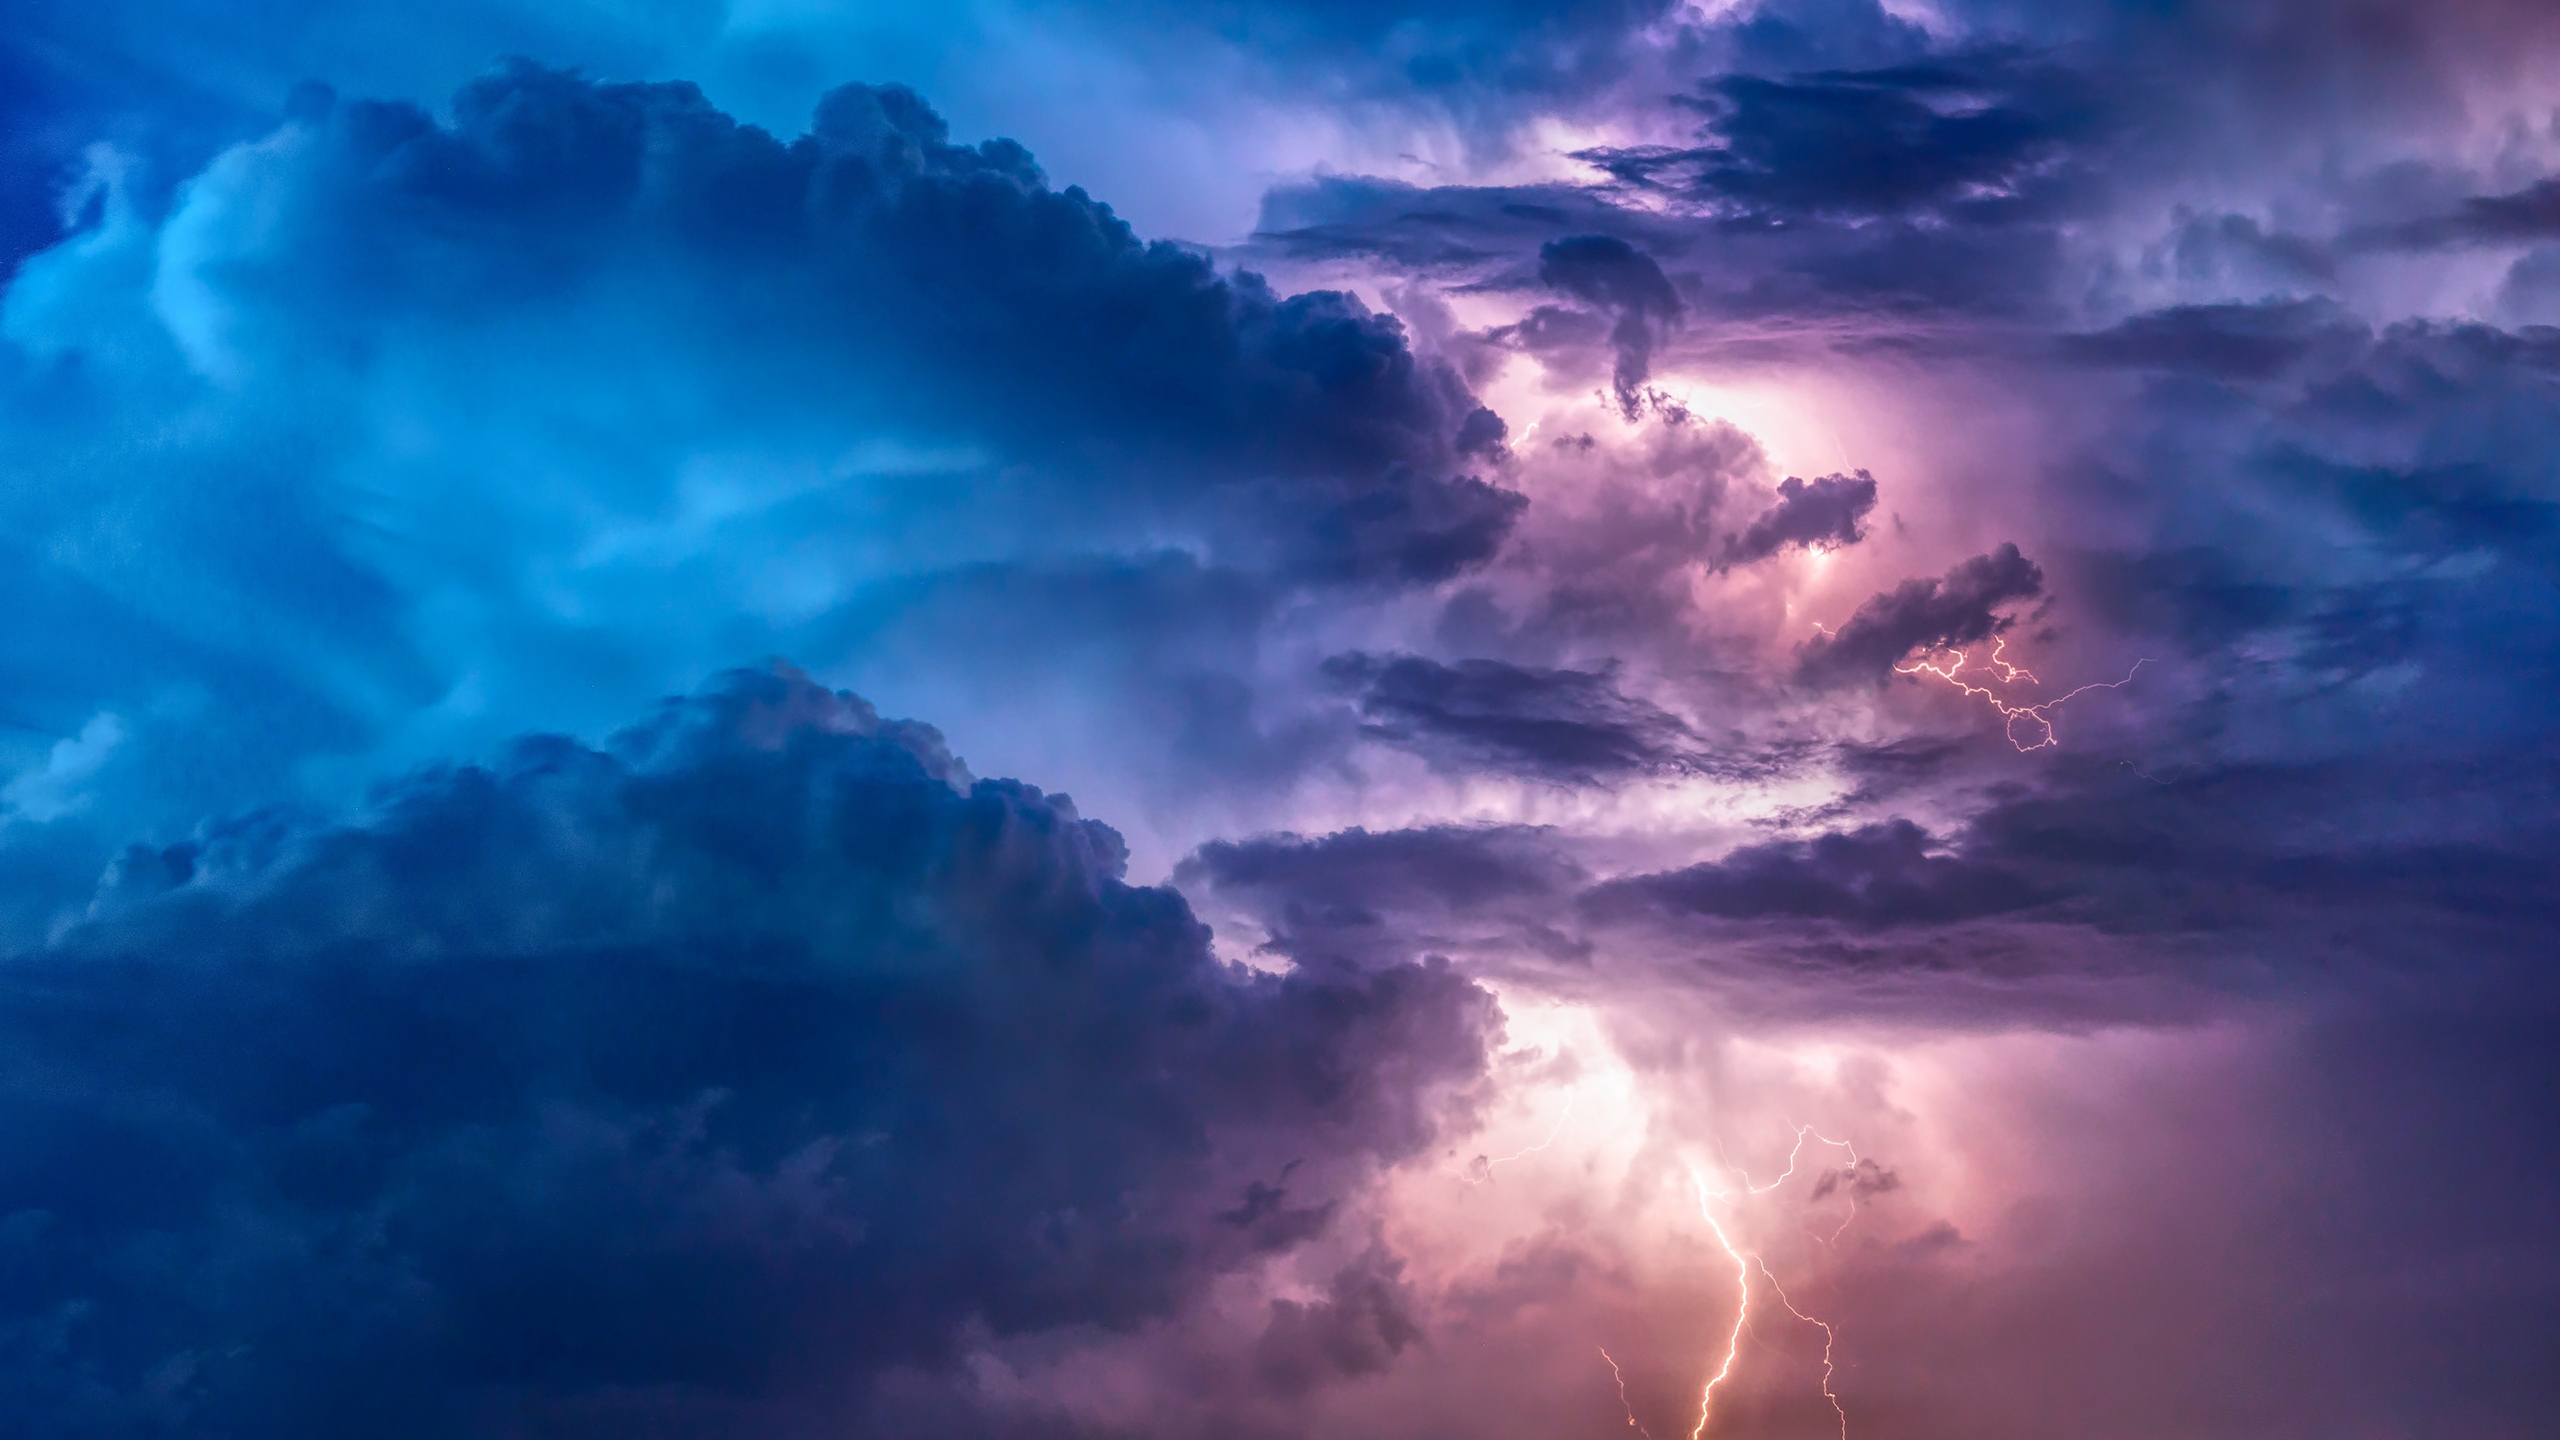 General 2560x1440 clouds storm lightning nature sky Time-lapse